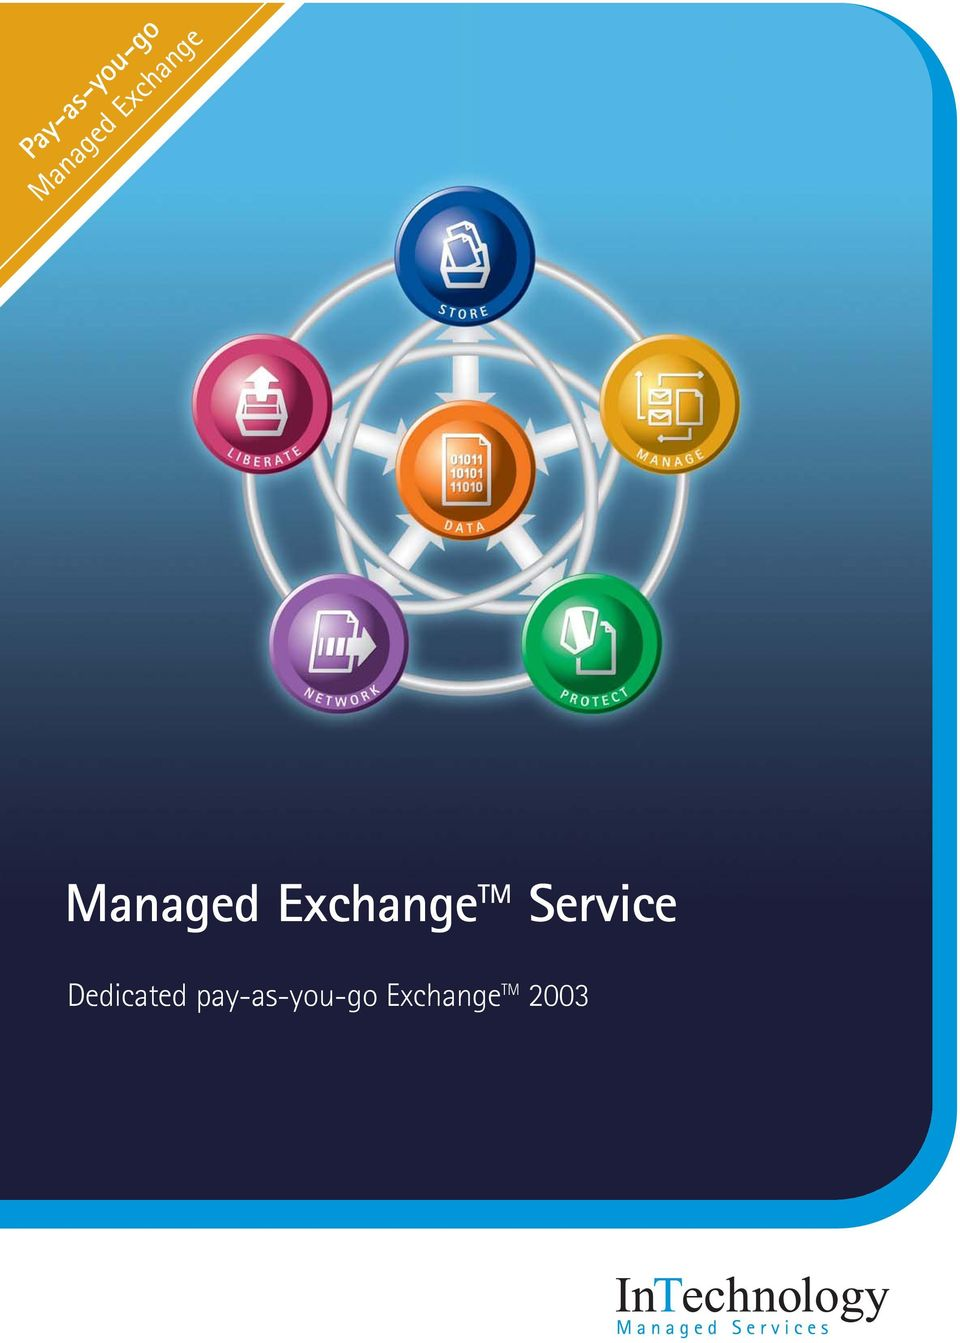 pay-as-you-go Exchange TM 2003 Secure